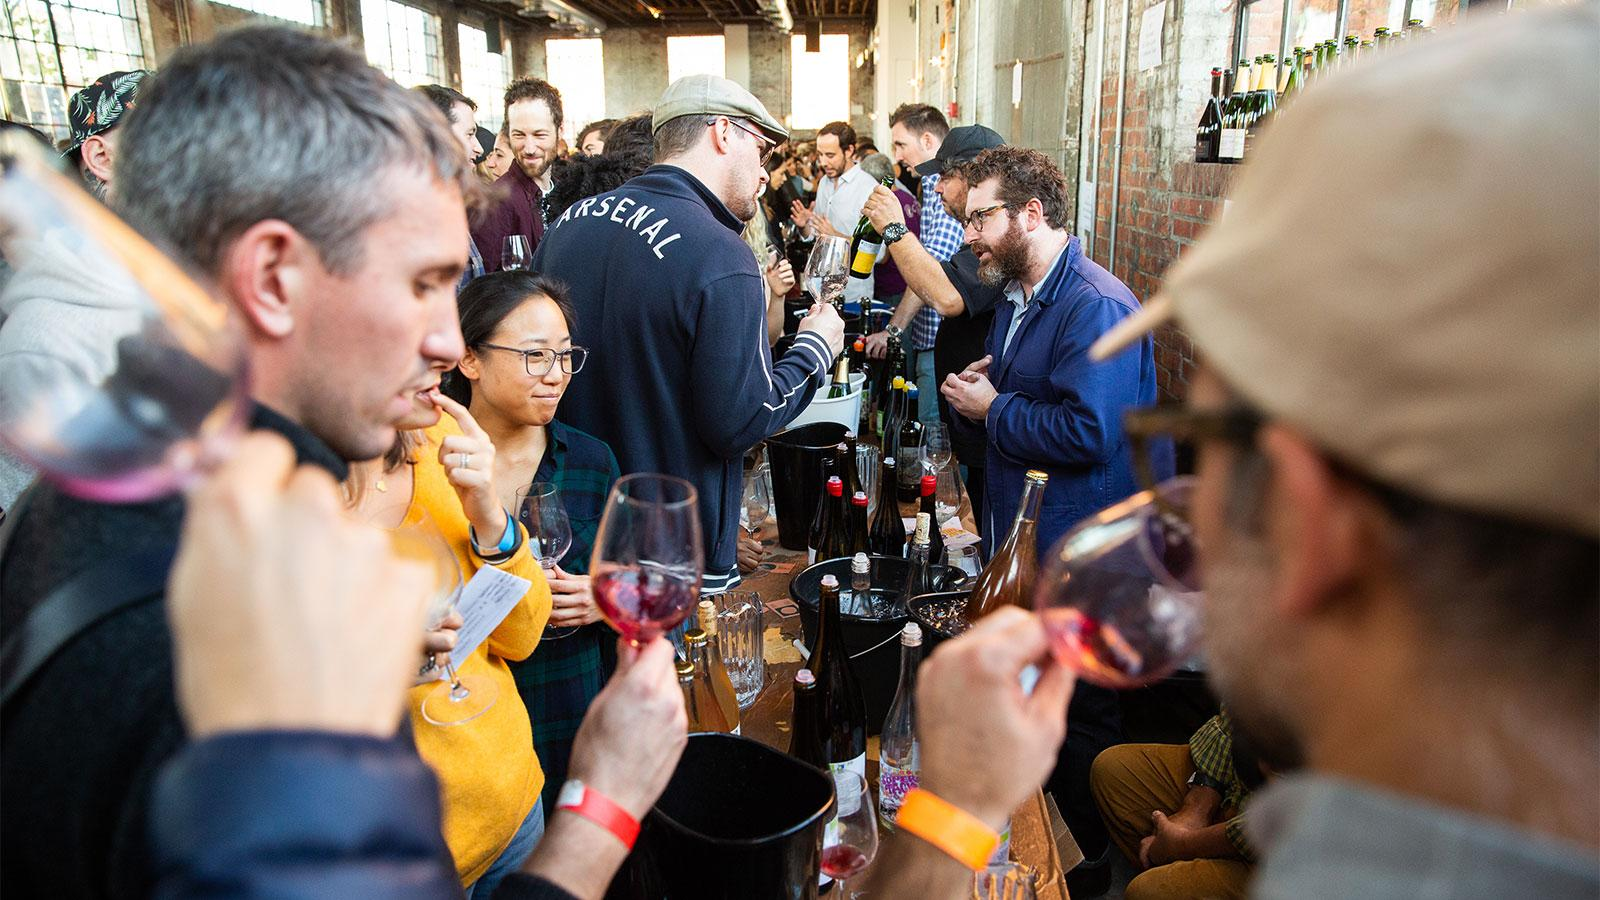 In Brooklyn, the Raw Wine fair attracted winemakers and fans from far and wide.